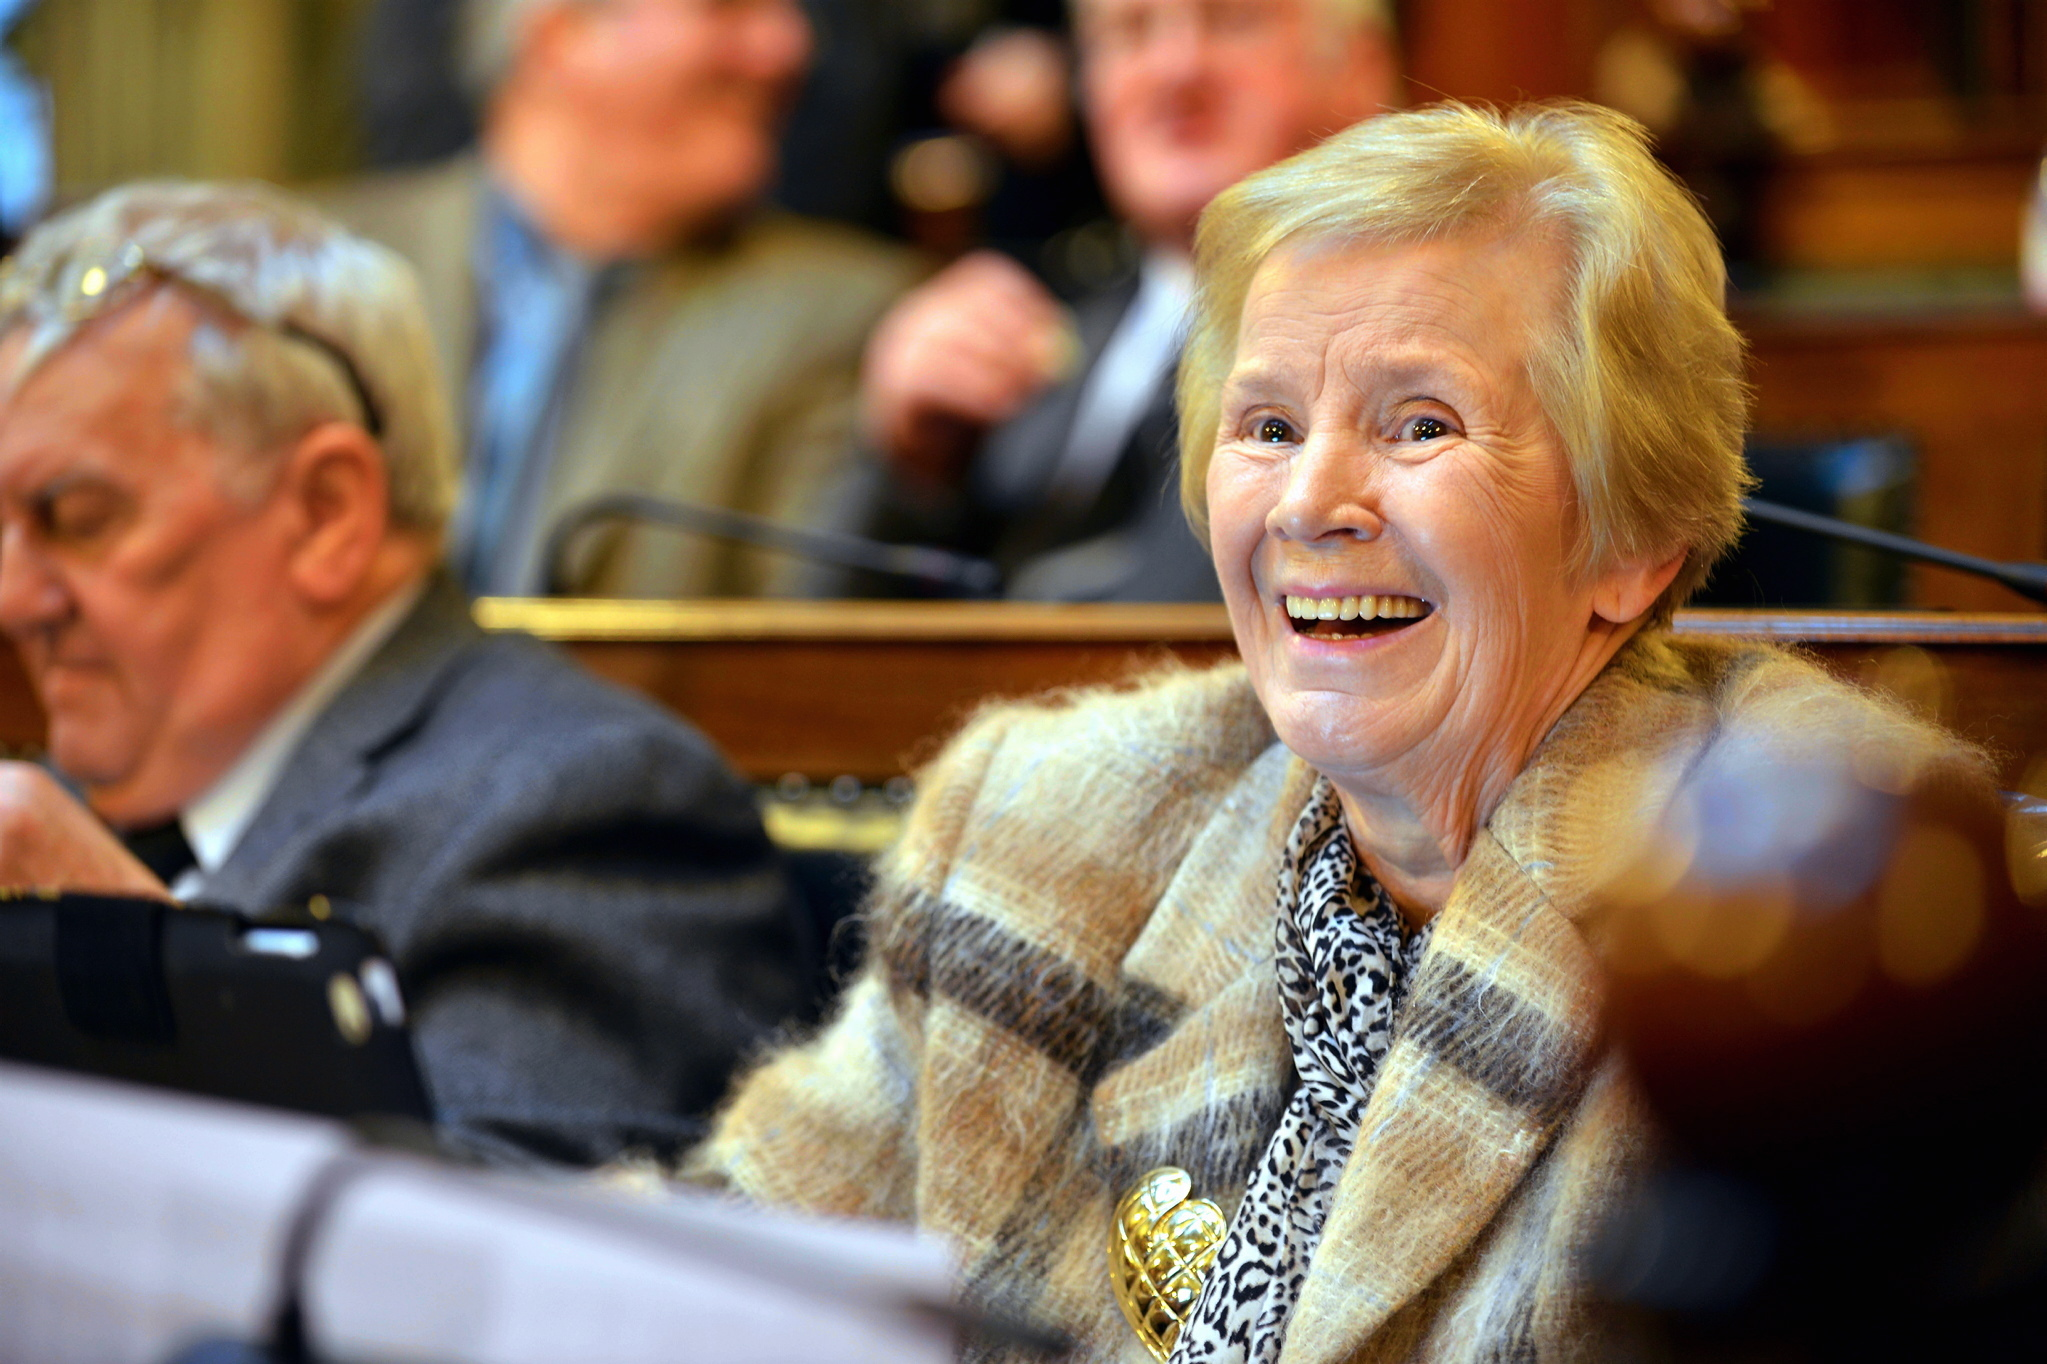 Tributes paid to brave former Lord Mayor and councillor Valerie Binney who has died aged 75